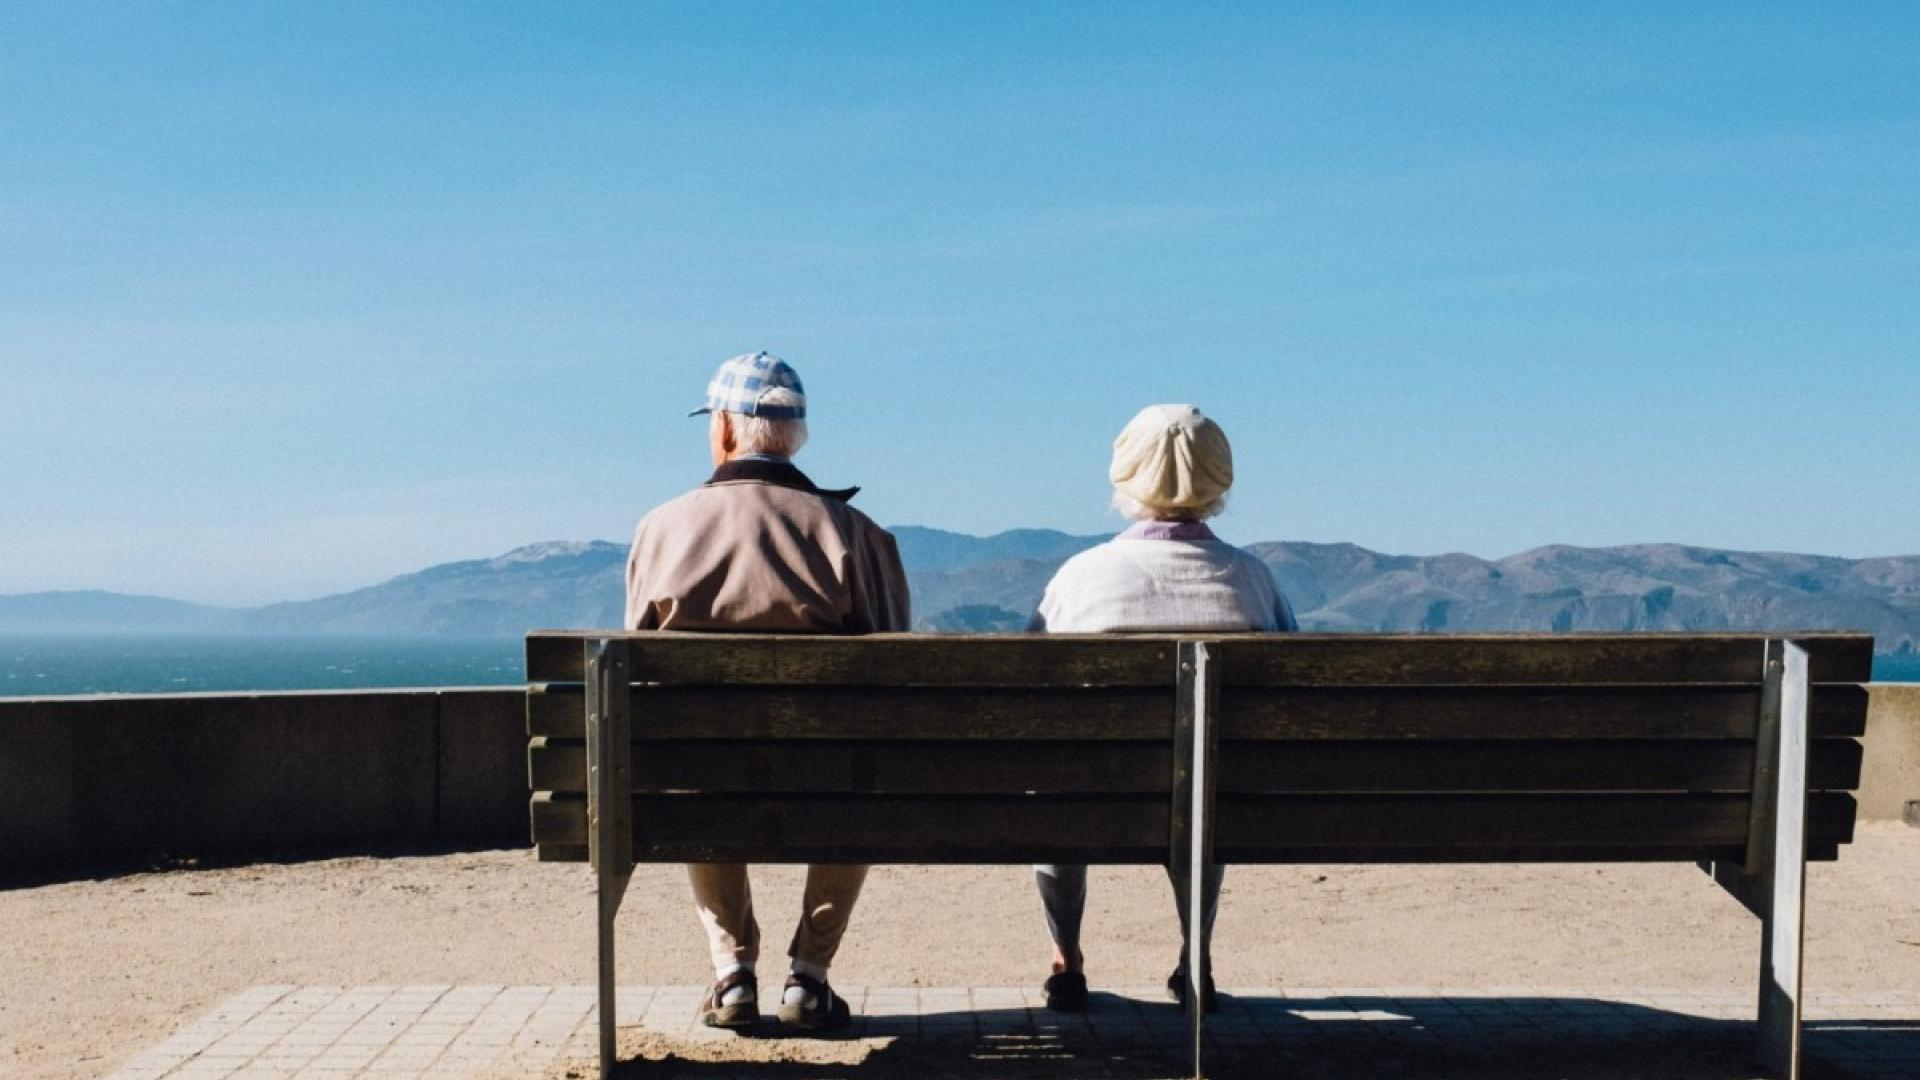 Having a sense of purpose is key to a long life, says new study